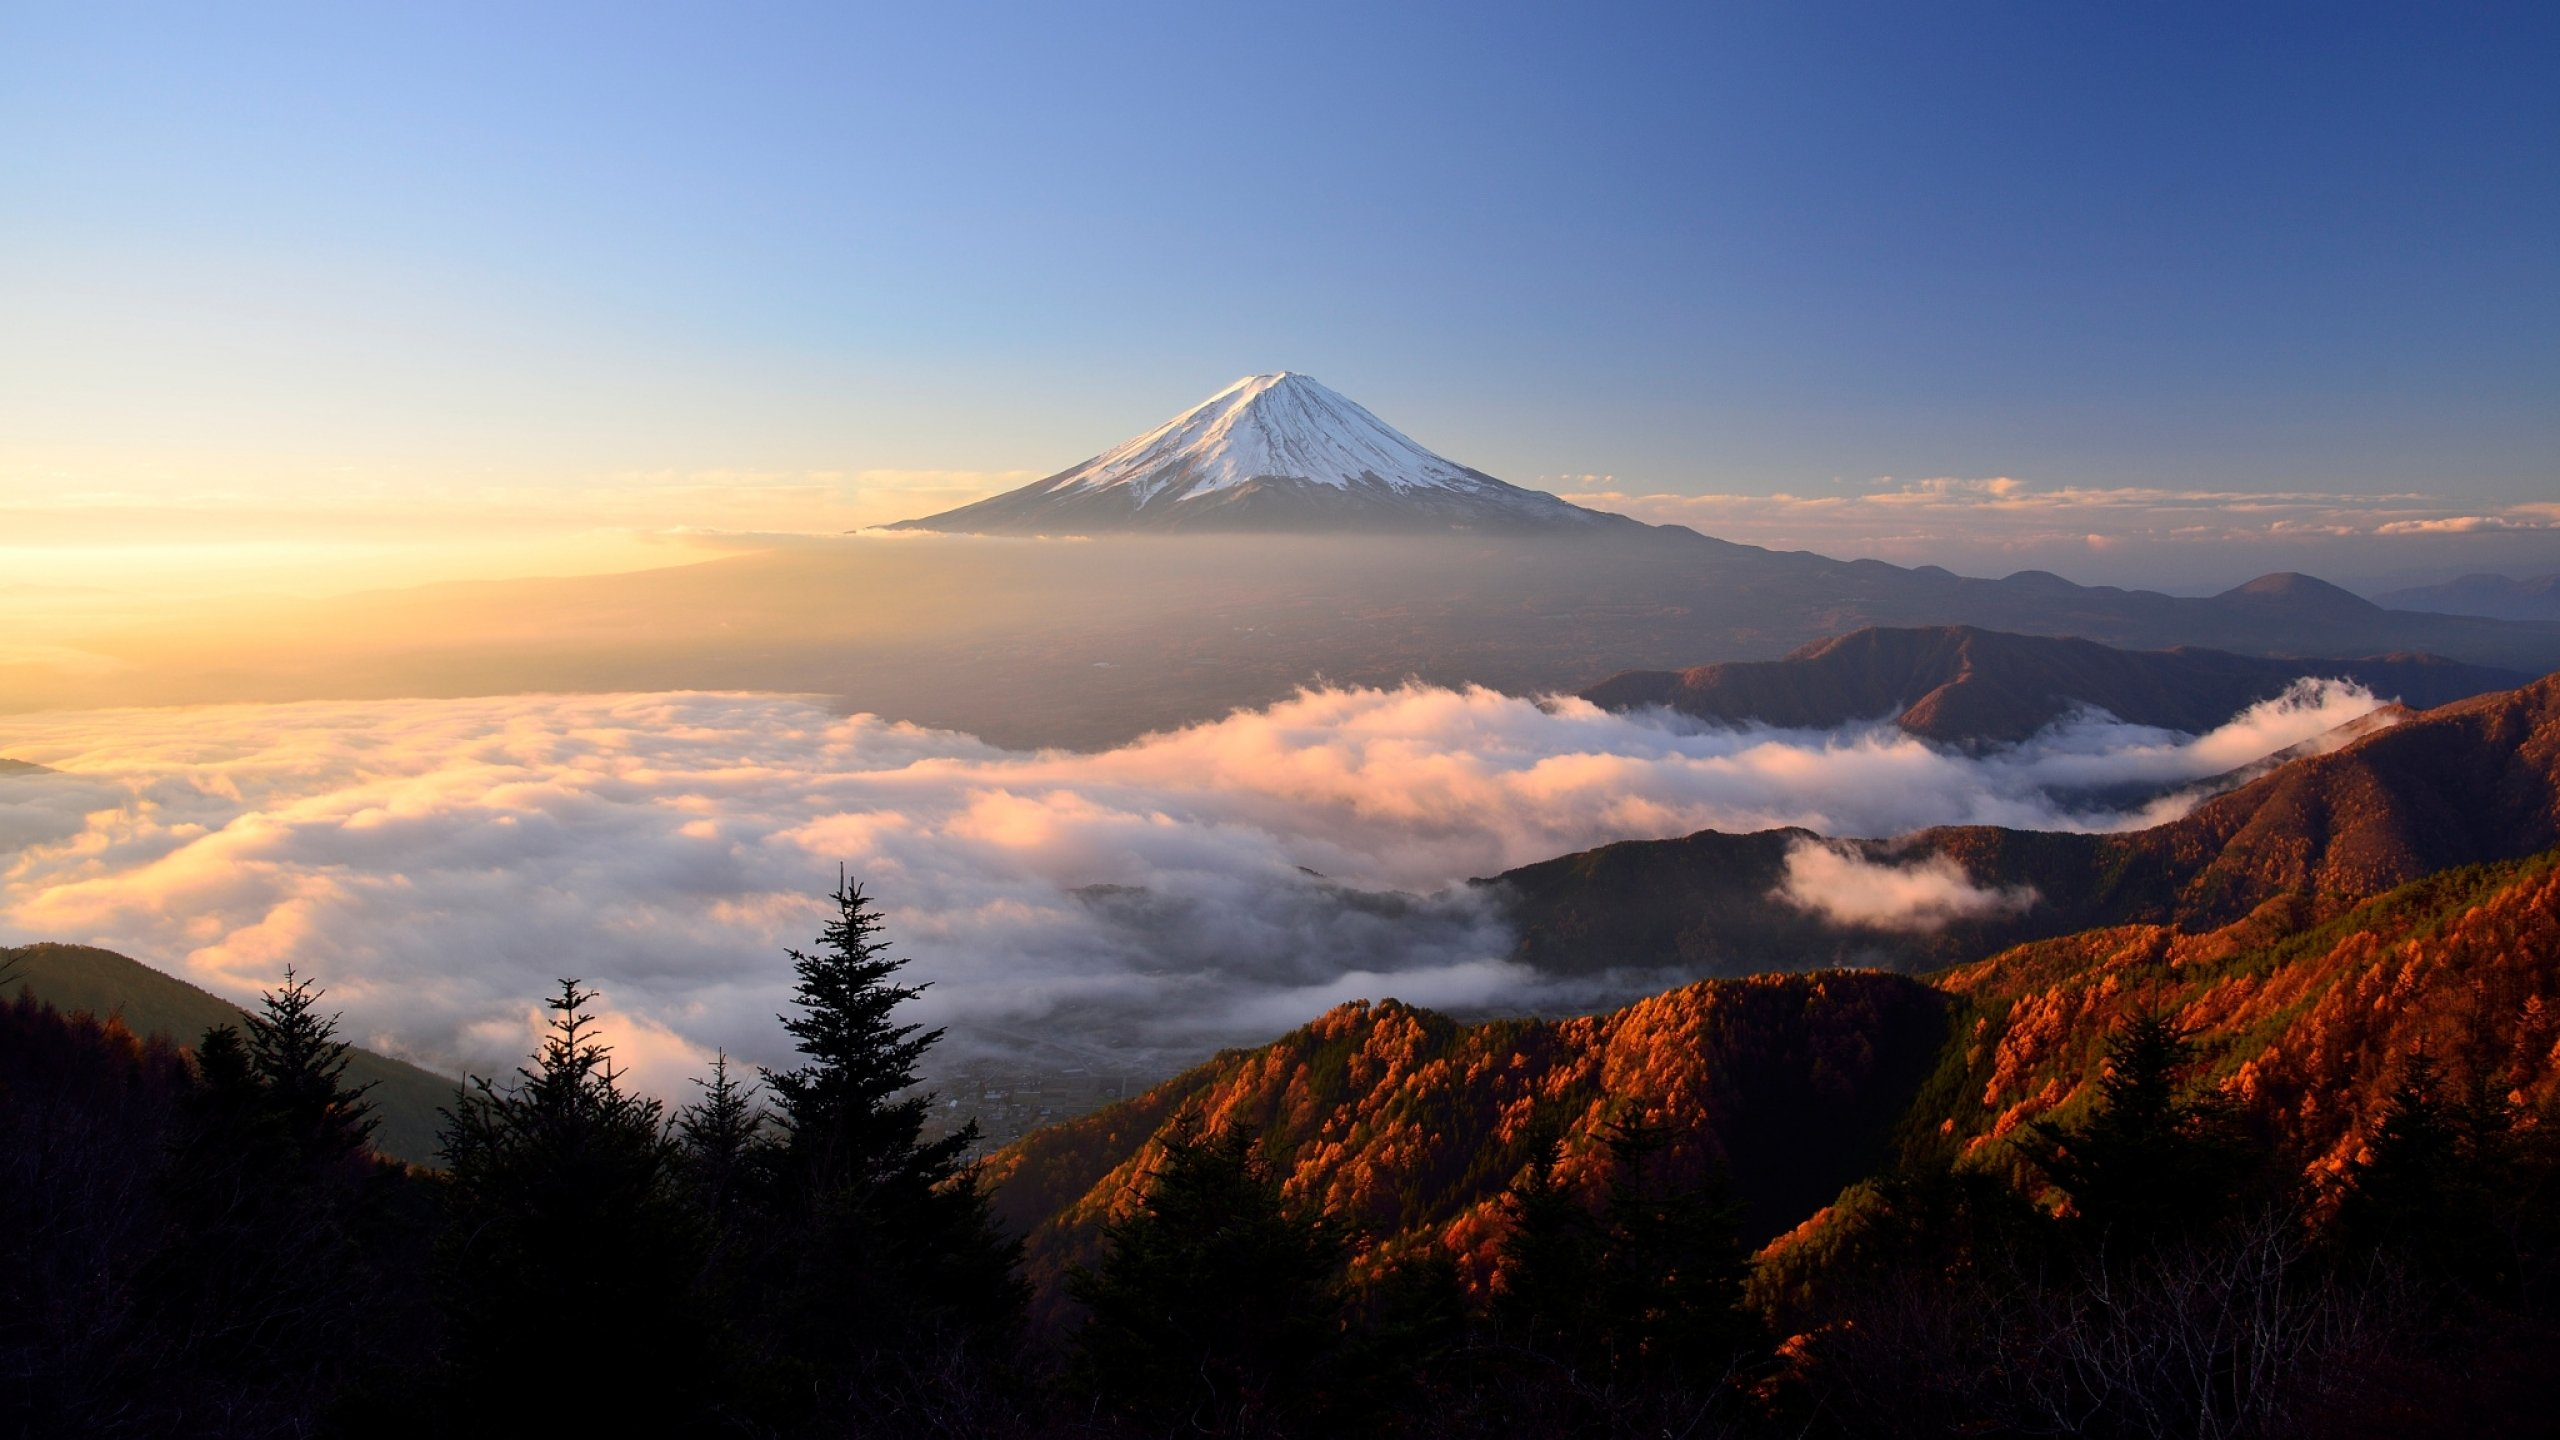 Mount Fuji Wallpapers and Background Images   stmednet 2560x1440